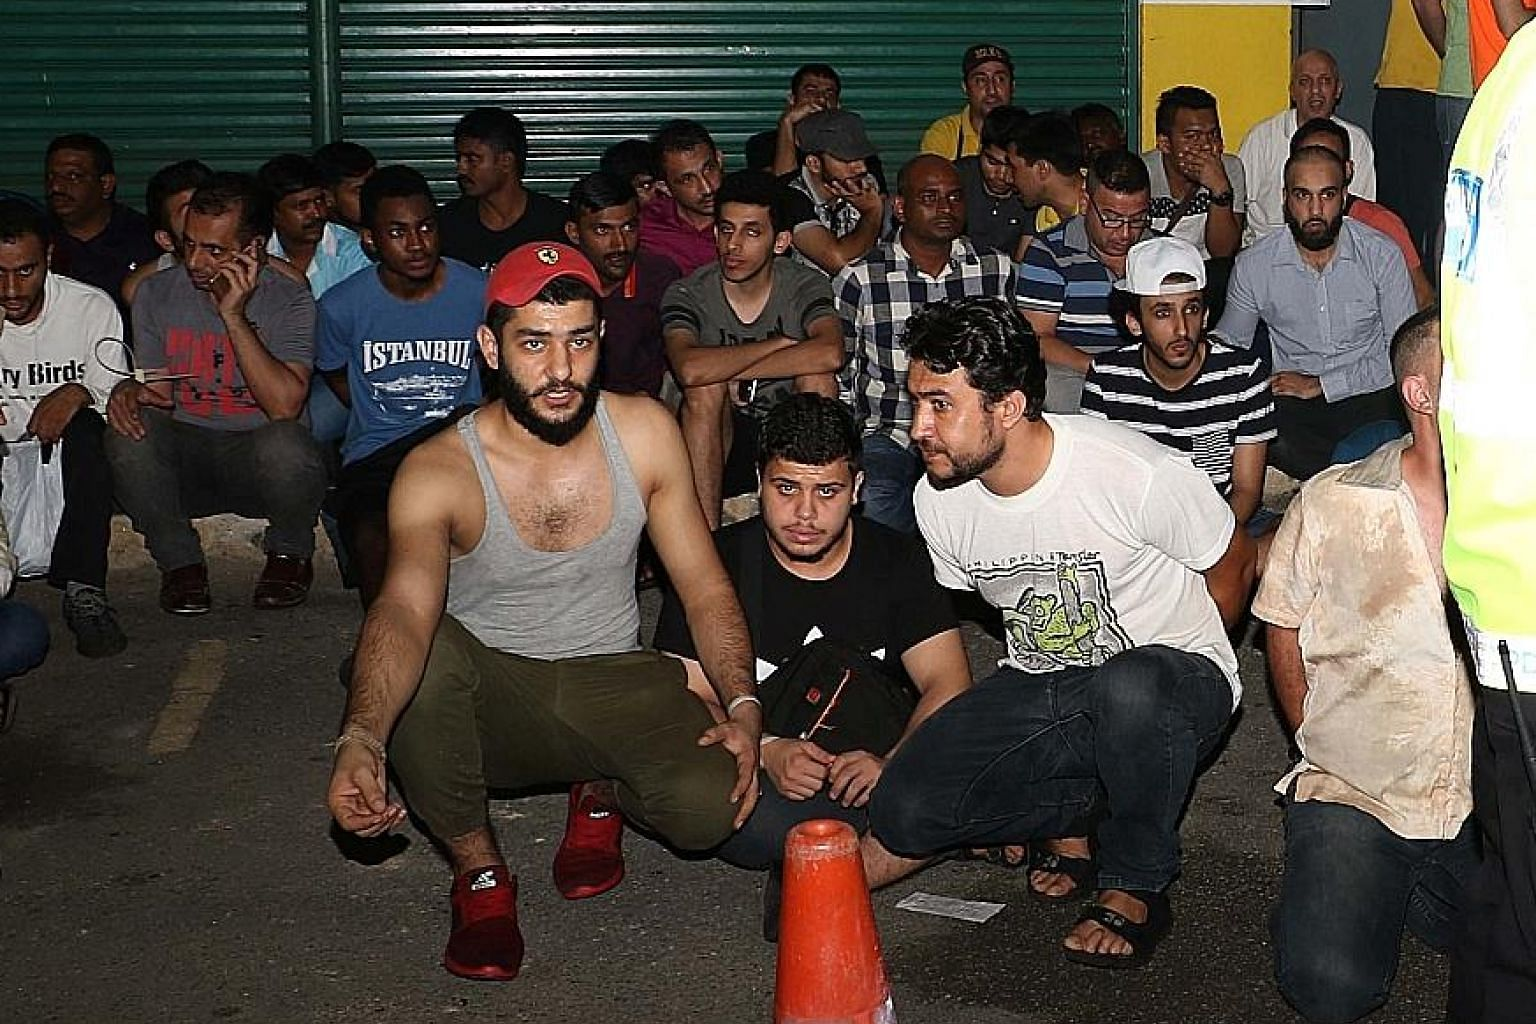 Foreigners being held after raids on Wednesday. Deputy Prime Minister Ahmad Zahid Hamidi has said that the authorities were looking for 16 people allegedly deported from Turkey.